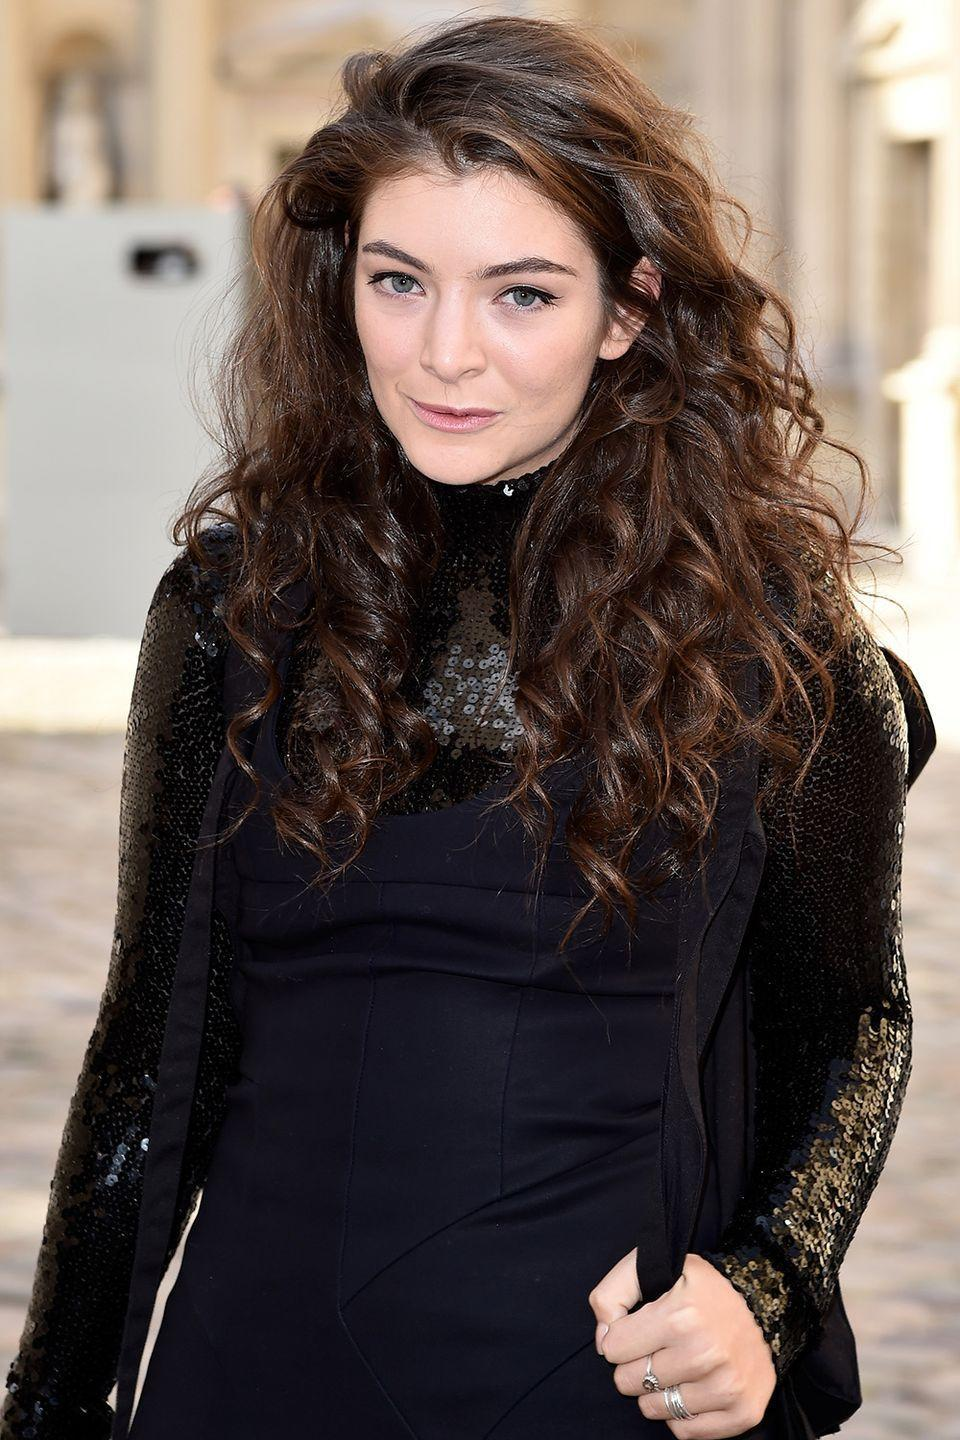 "<p><strong>Born</strong>: Ella Marija Lani Yelich-O'Connor</p><p>Lorde's pseudonym is only for the stage. ""I much prefer being called Ella,"" the New Zealand-born musician told <em><a href=""https://abcnews.go.com/Entertainment/lorde-chose-stage/story?id=22771133"" rel=""nofollow noopener"" target=""_blank"" data-ylk=""slk:ABC News Radio"" class=""link rapid-noclick-resp"">ABC News Radio</a></em>. ""I basically chose Lorde because I wanted a name that was really strong and had this grandeur to it. I didn't feel that my birth name was anything special. I always liked the idea of having, like, a one-named alias.""</p>"